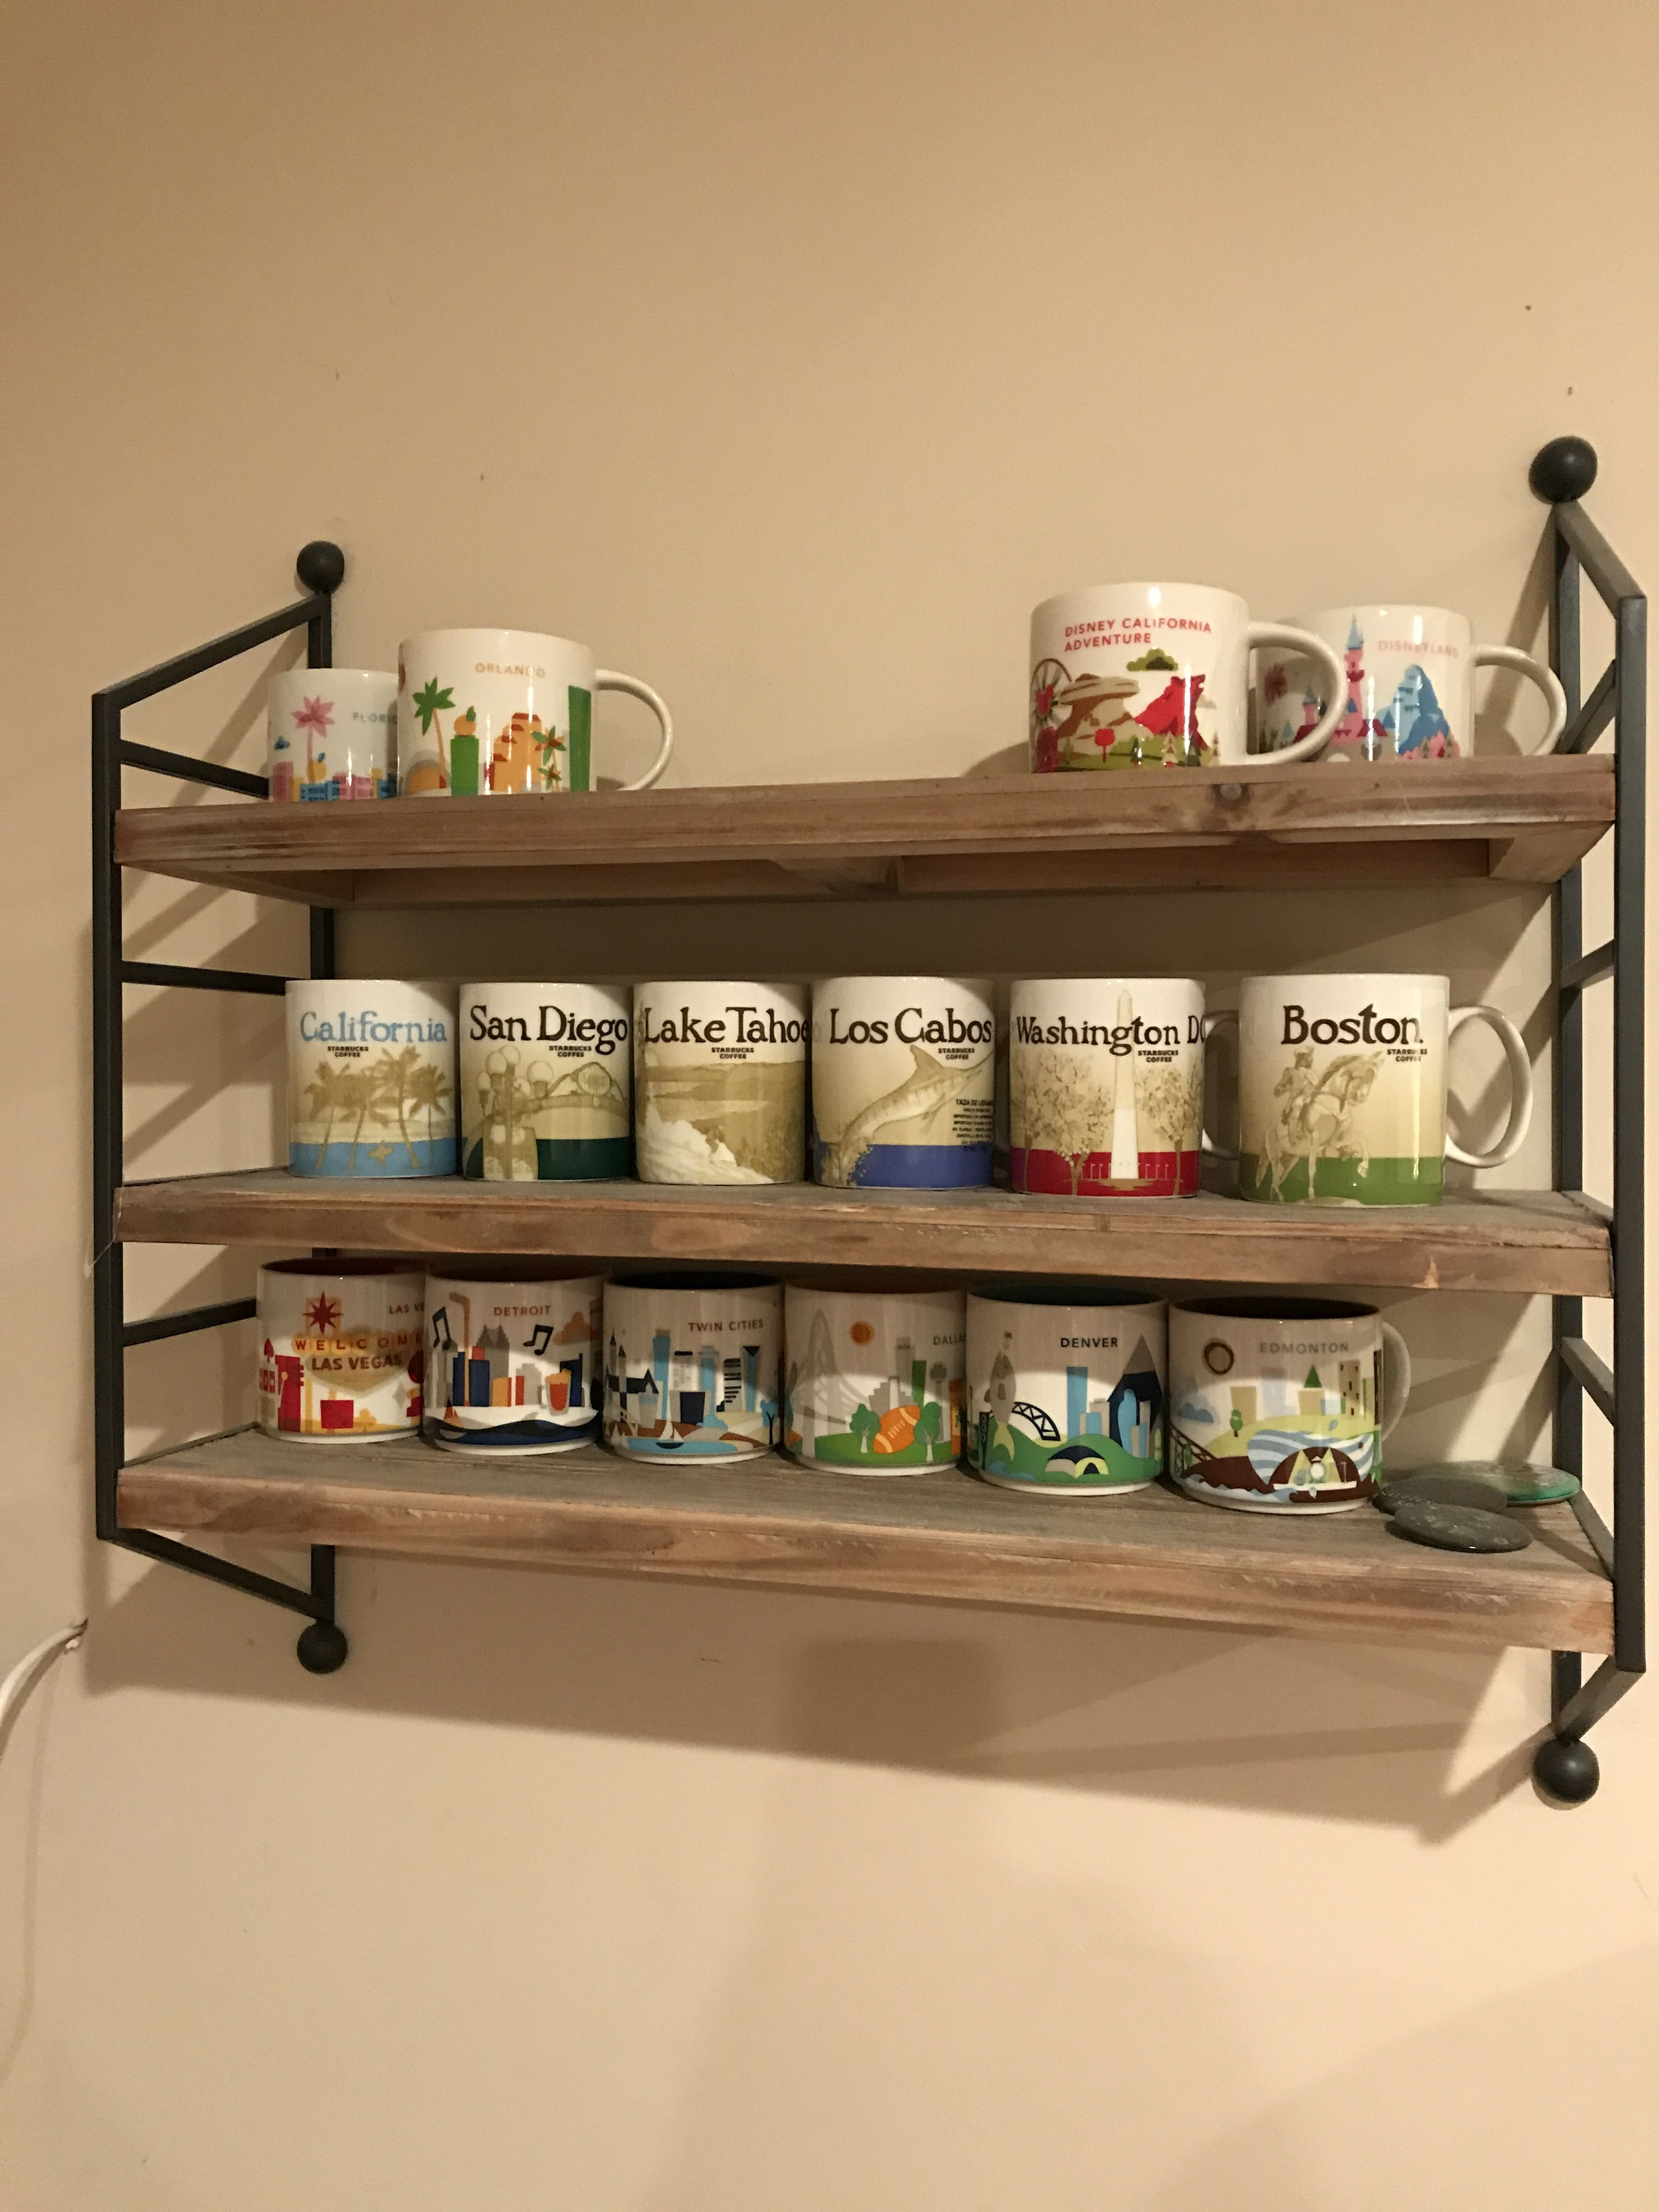 Pin by Natalie Collins on Starbucks yah collection Decor